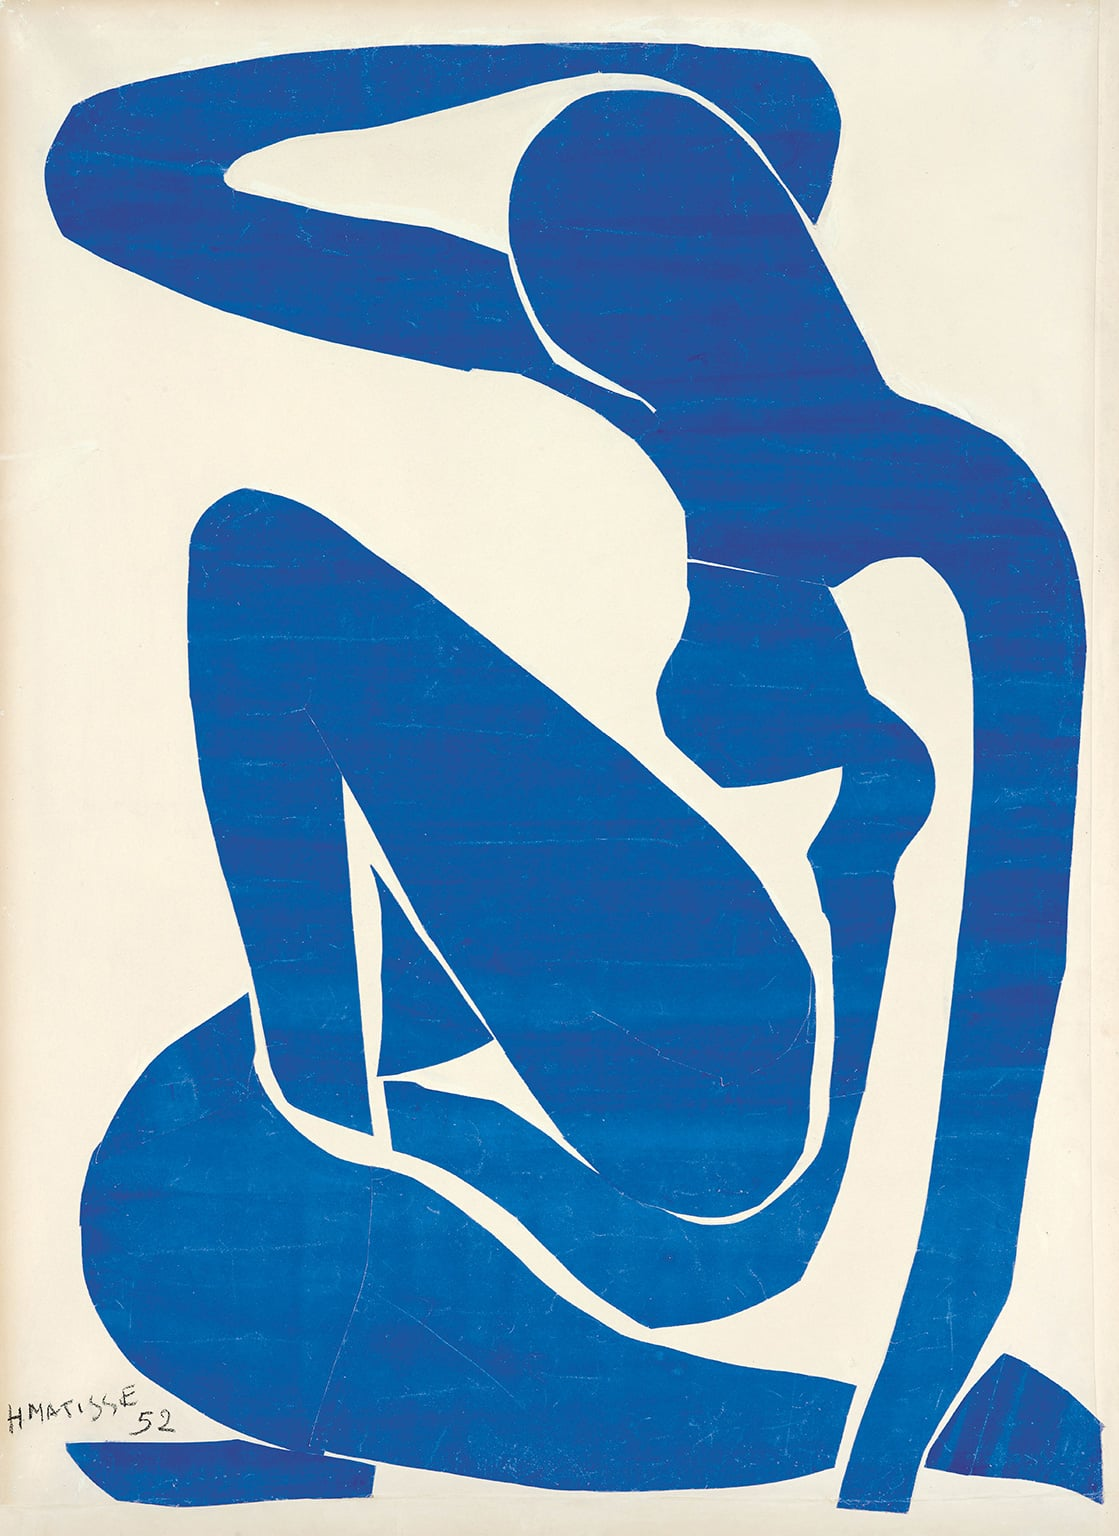 4. Matisse: The Cut-Outs at Tate Modern. 50% off with National Art Pass - Henri Matisse, Blue Nude (I), 1952. Foundation Beyeler, Riehen/Basel. Photo: Robert Bayer, Basel © Succession Henri Matisse/DACS 2013